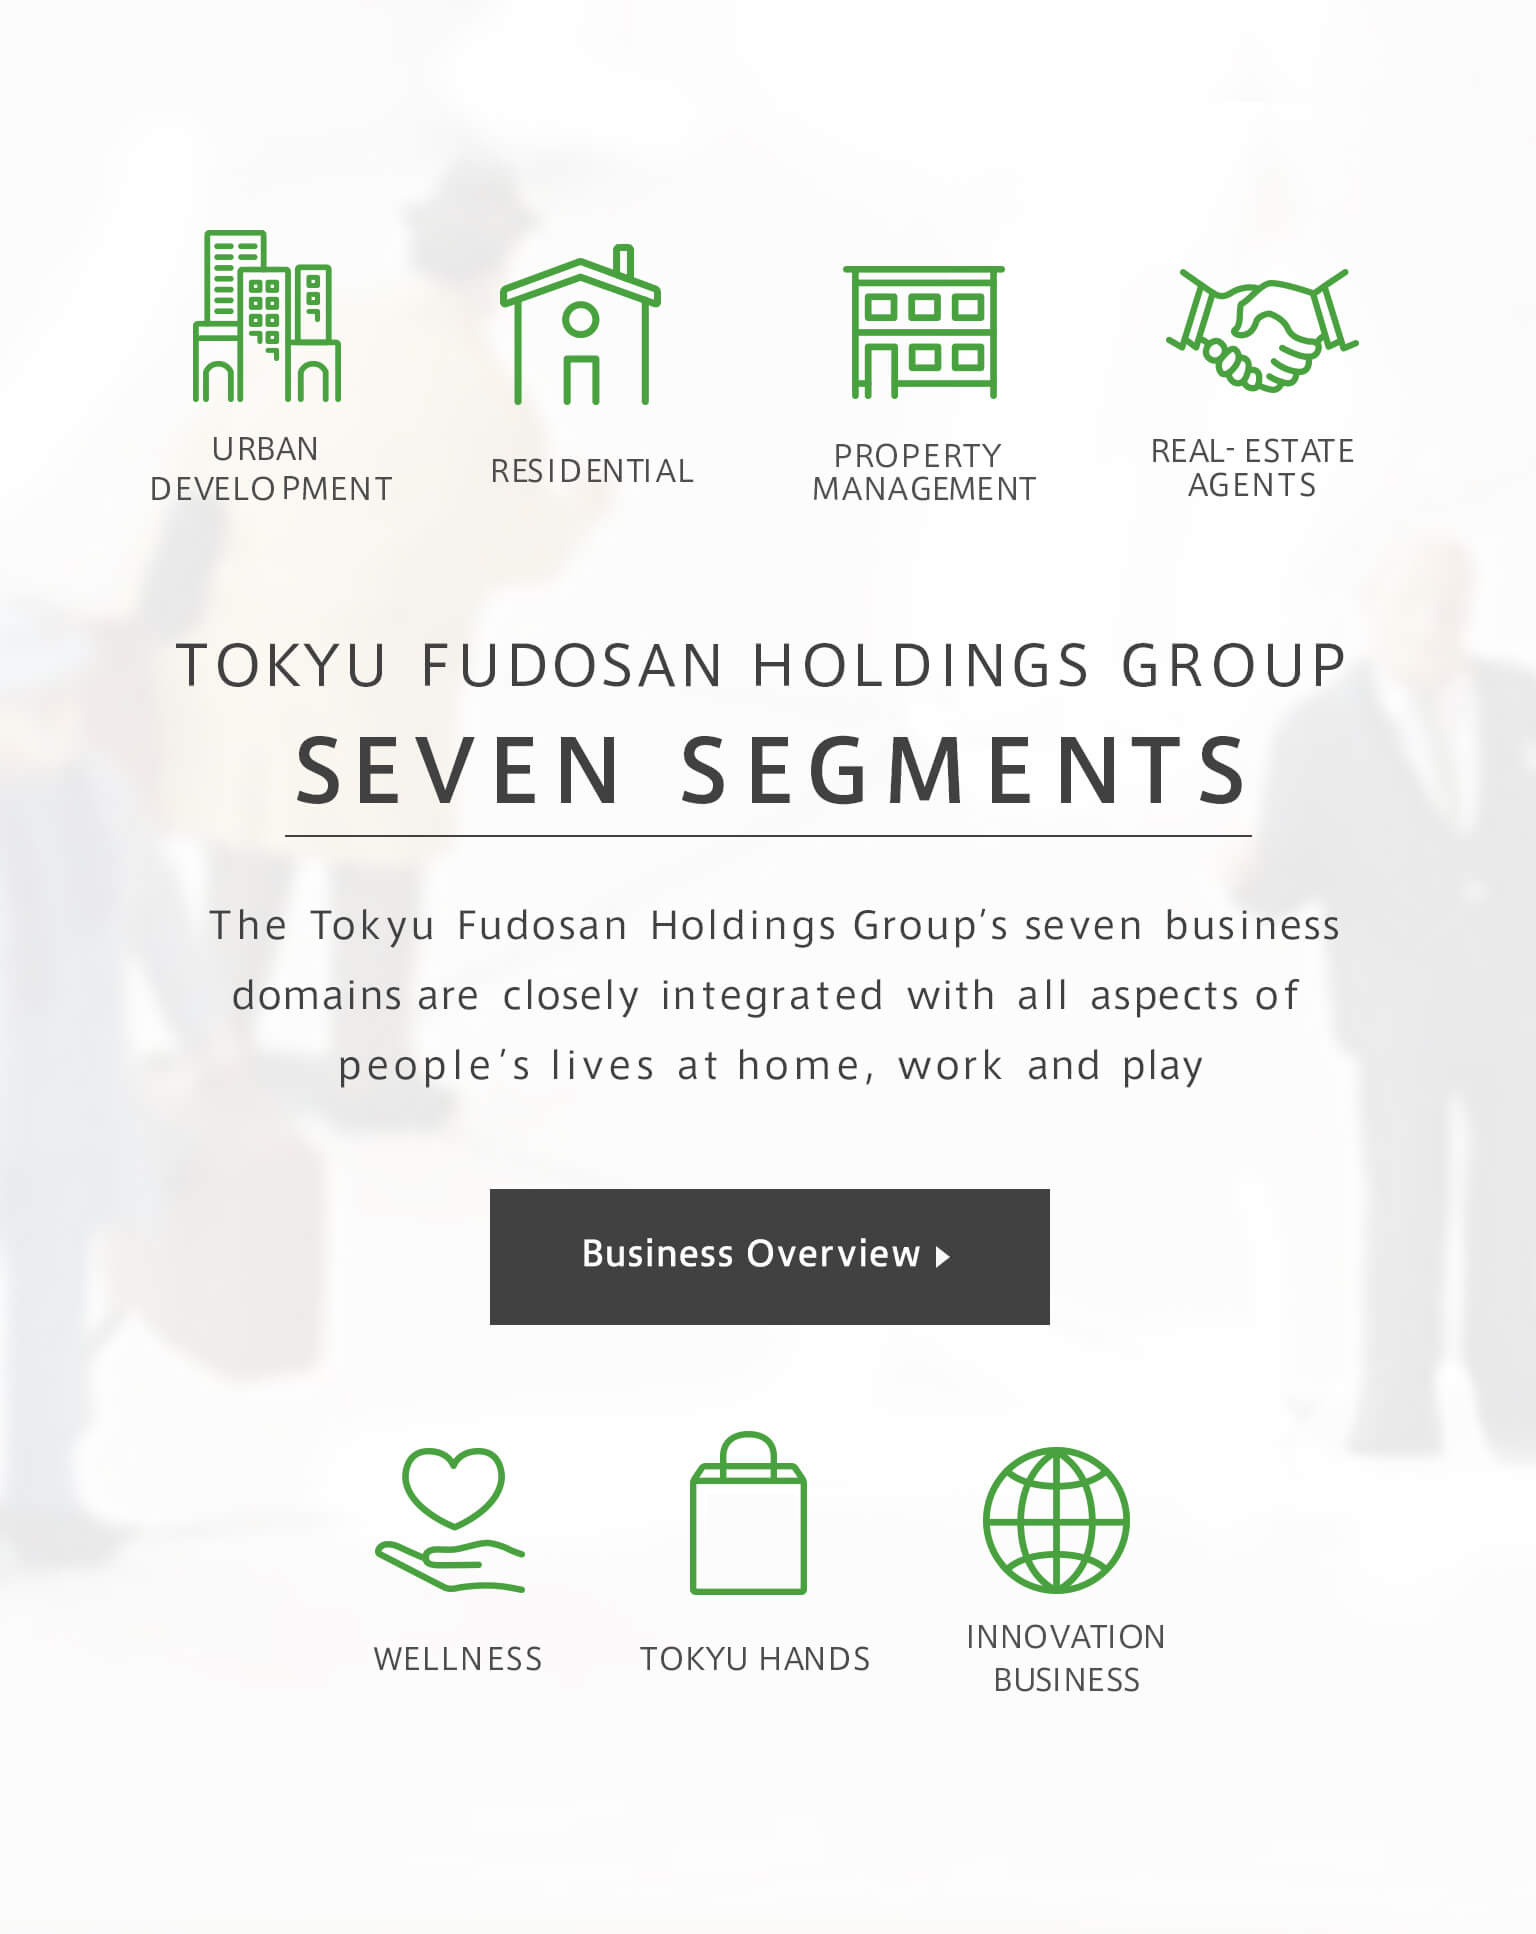 The Tokyu Fudosan Holdings Group's seven business domains are closely integrated with all aspects of people's lives at home, work and play.